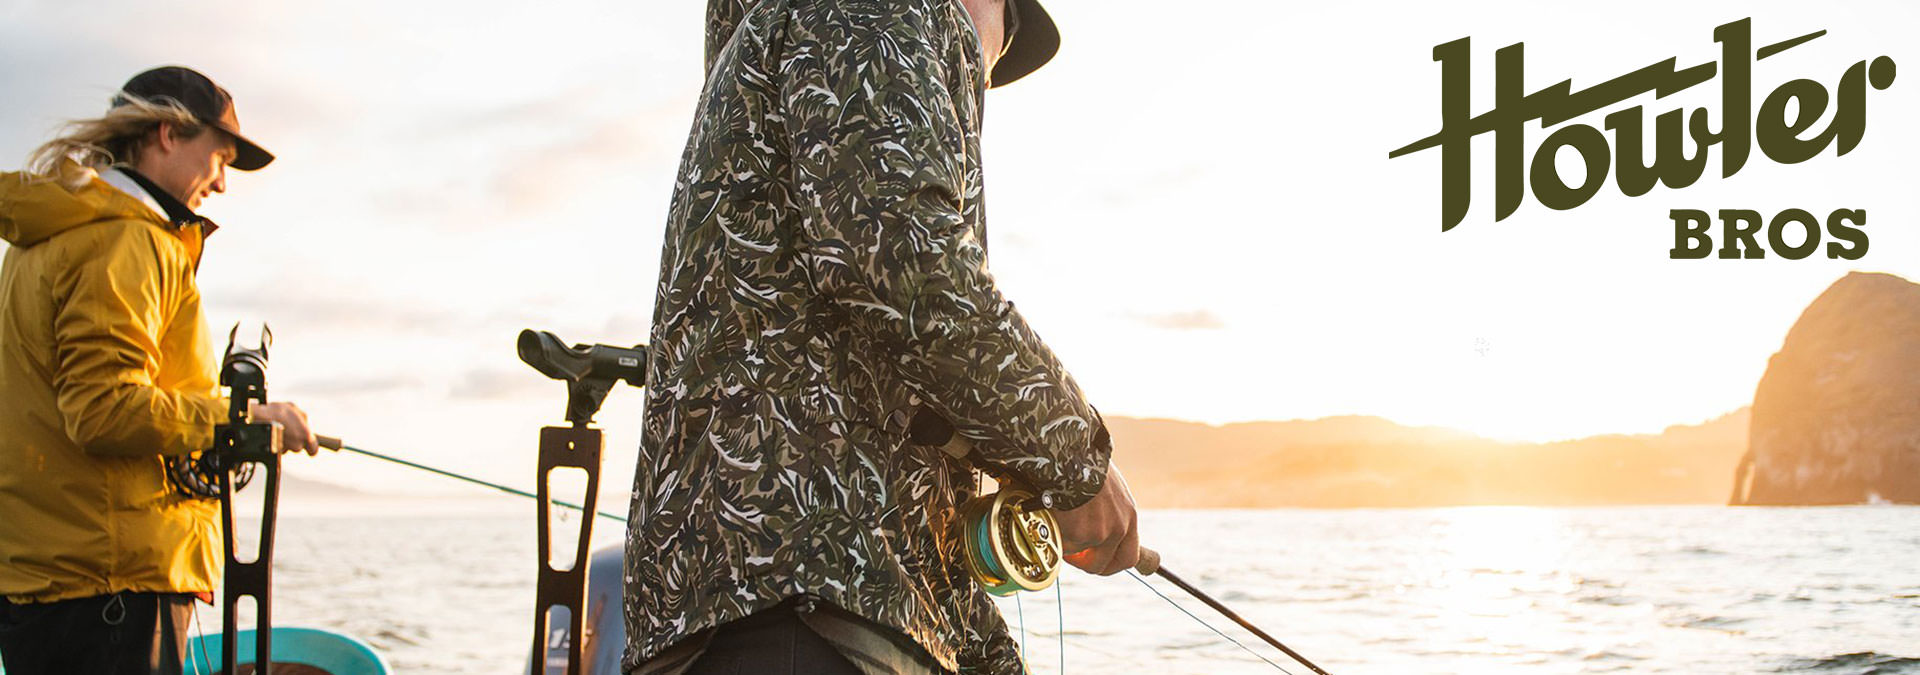 Howler Brothers Fly Fishing Apparel and Hats and jackets